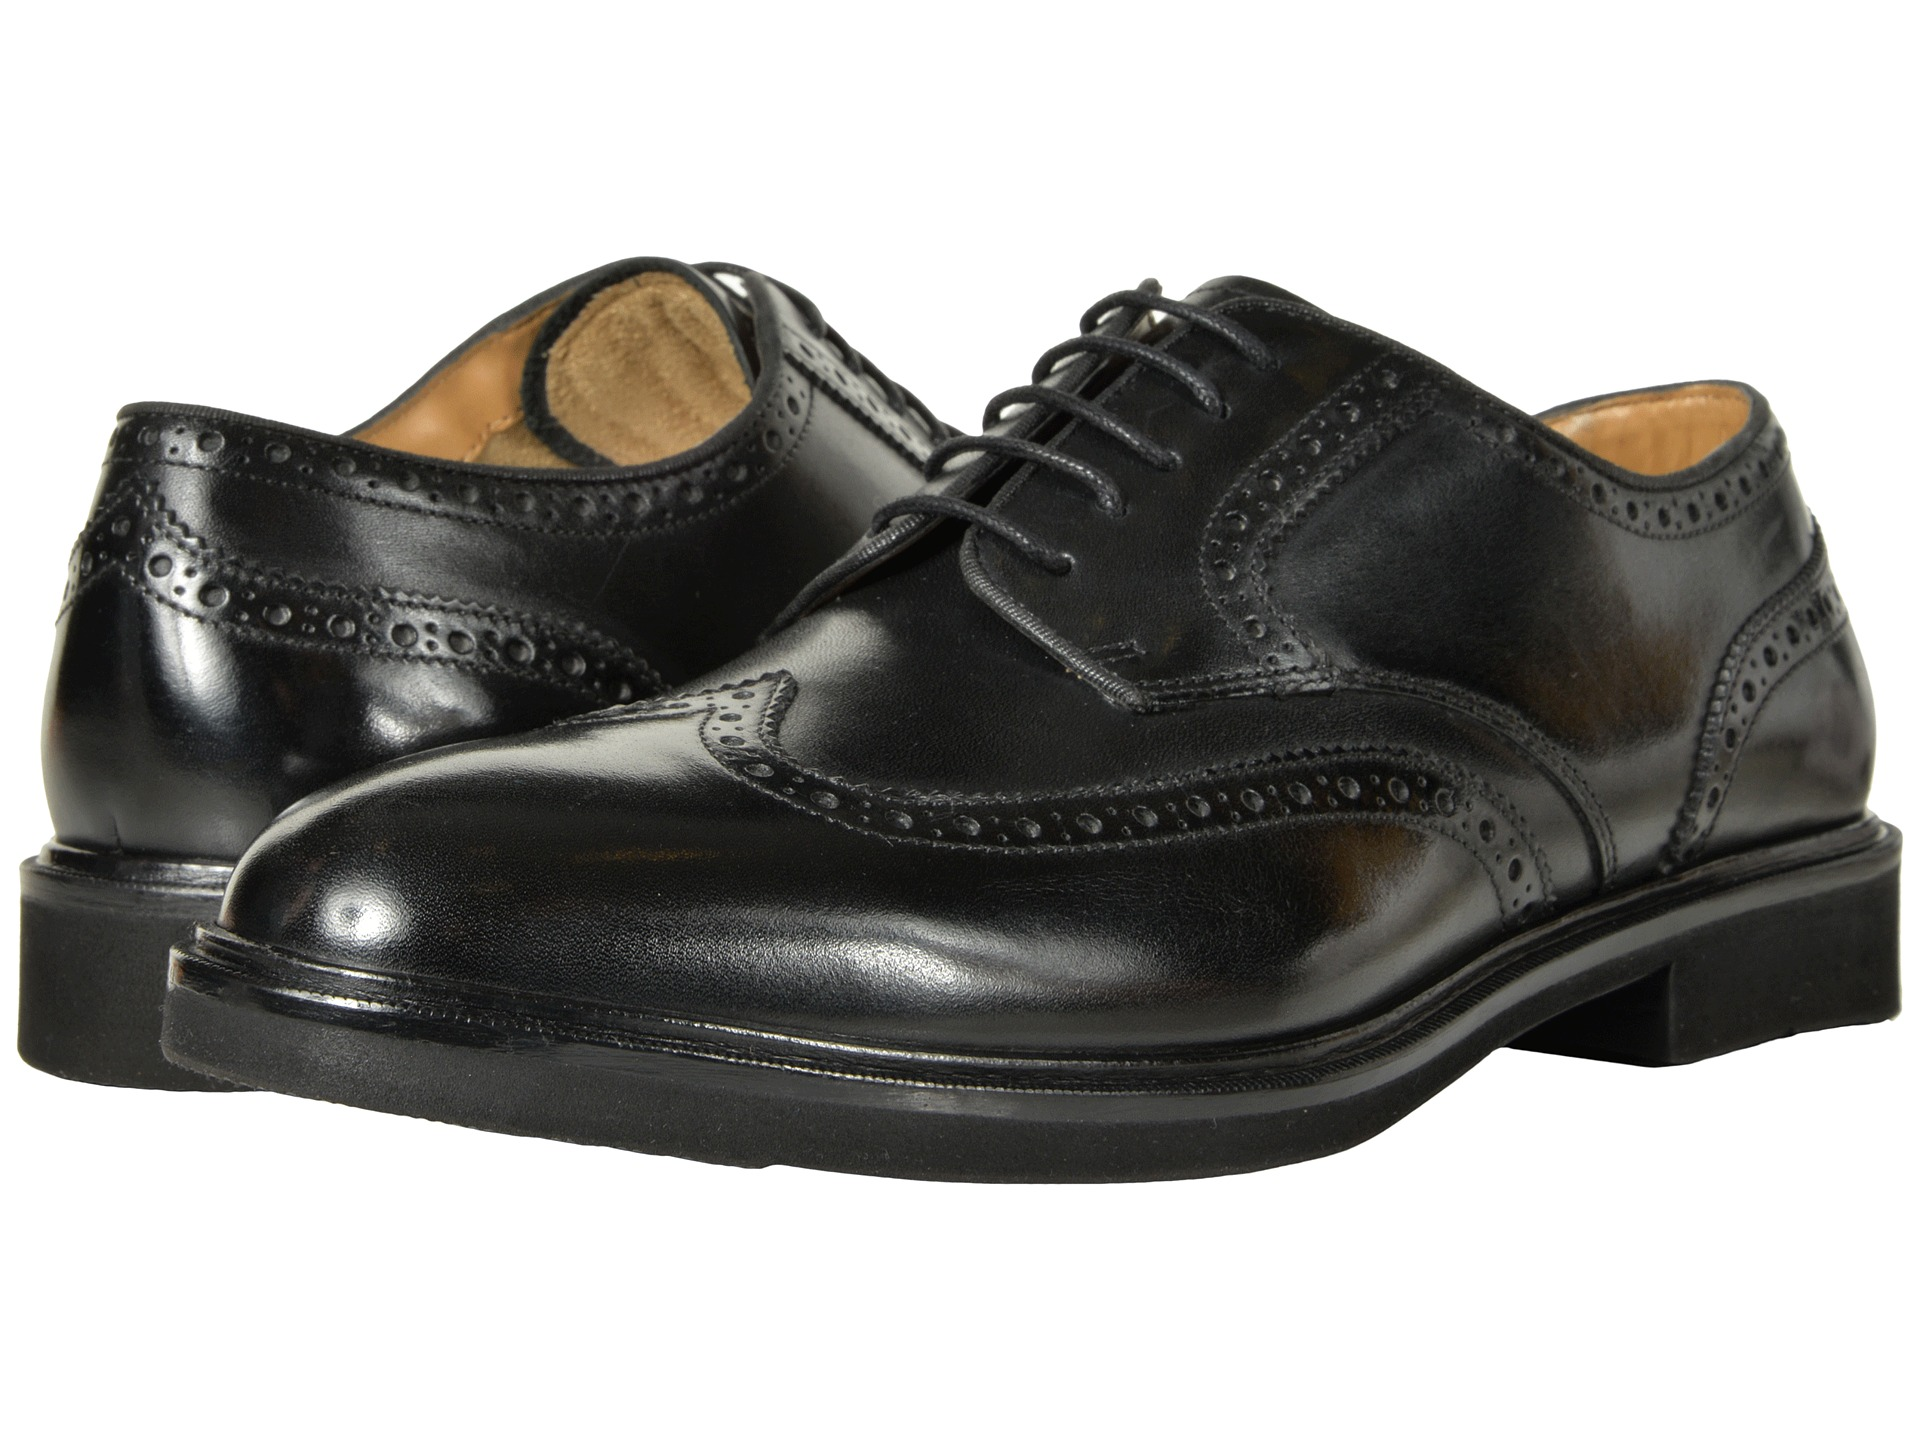 Florsheim Shoes. Clothing. Shoes. Florsheim Shoes. Showing 48 of 88 results that match your query. Search Product Result. Product - Florsheim Men Gallo Plain Toe Oxford Shoes. Product - Florsheim Castellano Mcsl Mens Black Leather Casual Dress Slip On Loafers Shoes.